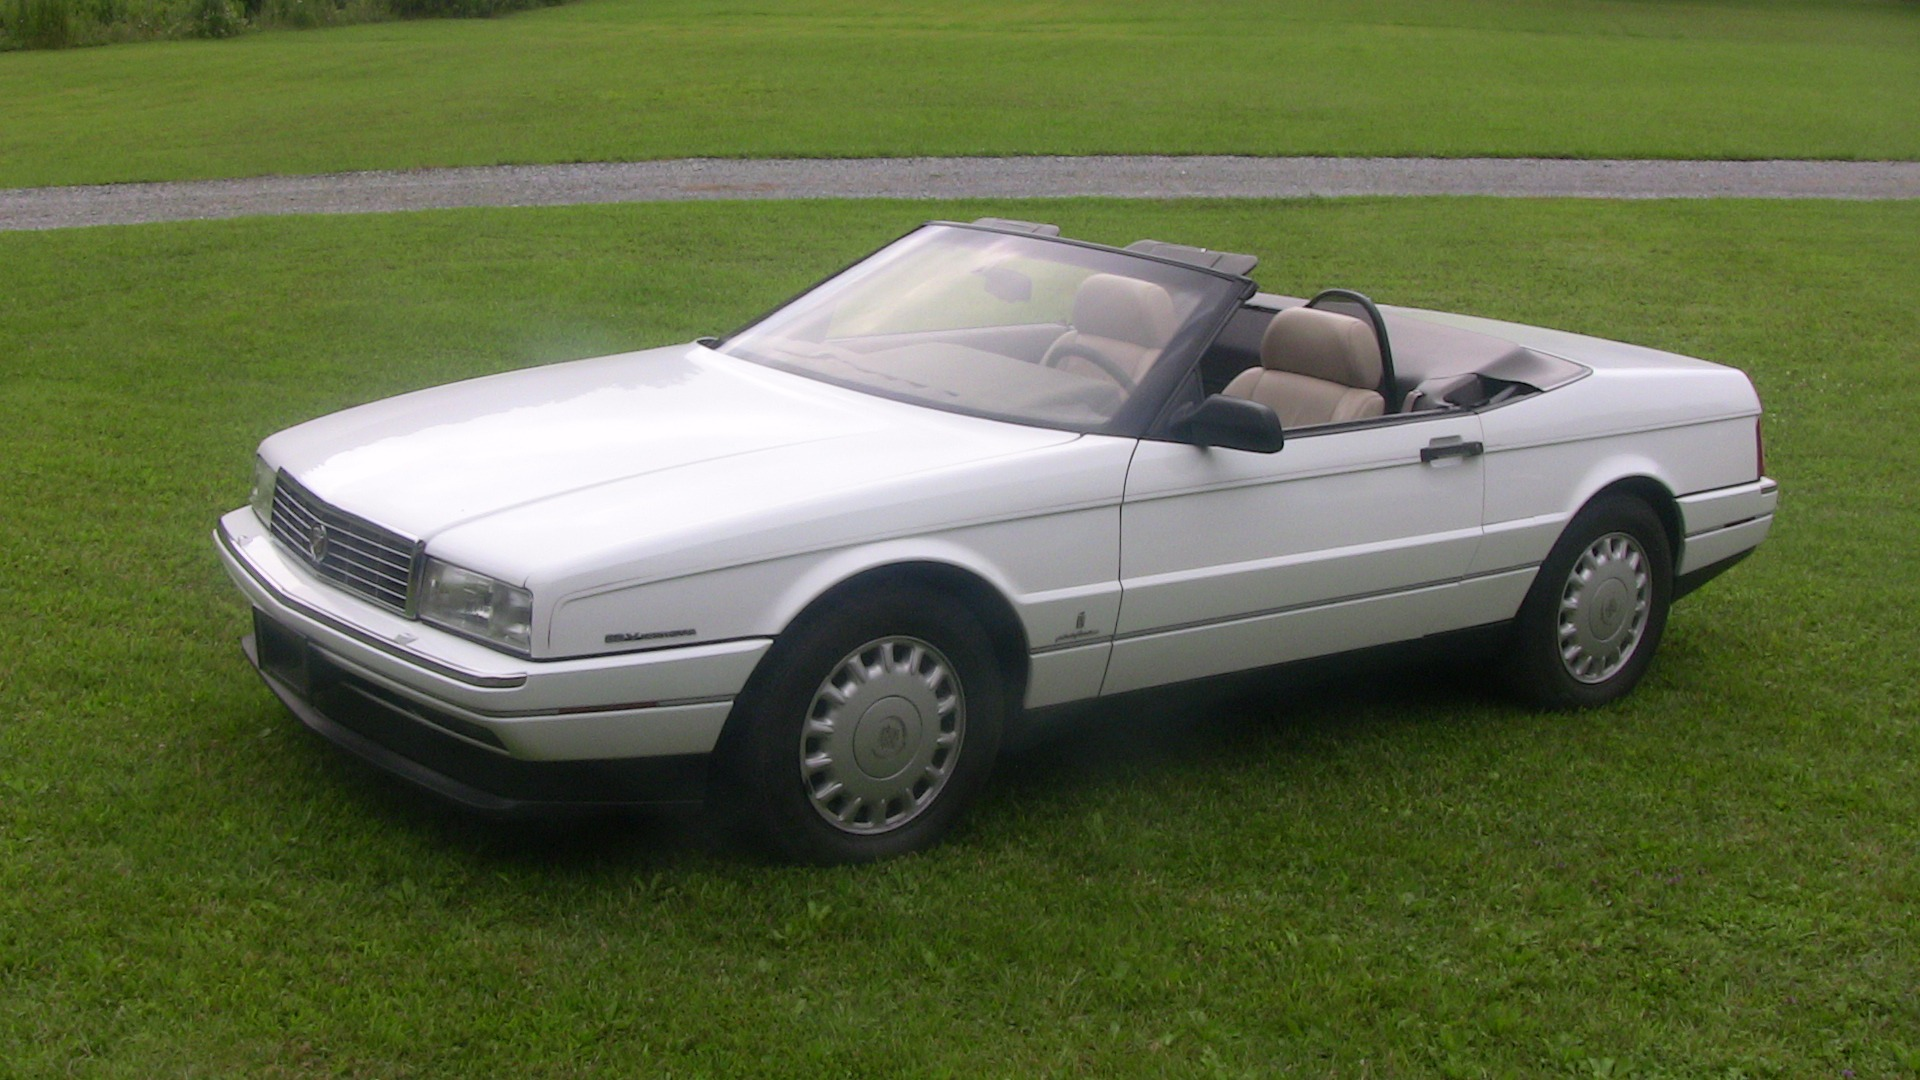 Used 1993 Cadillac Allante Convertible 51 , For Sale $10500, Call Us: (704) 996-3735